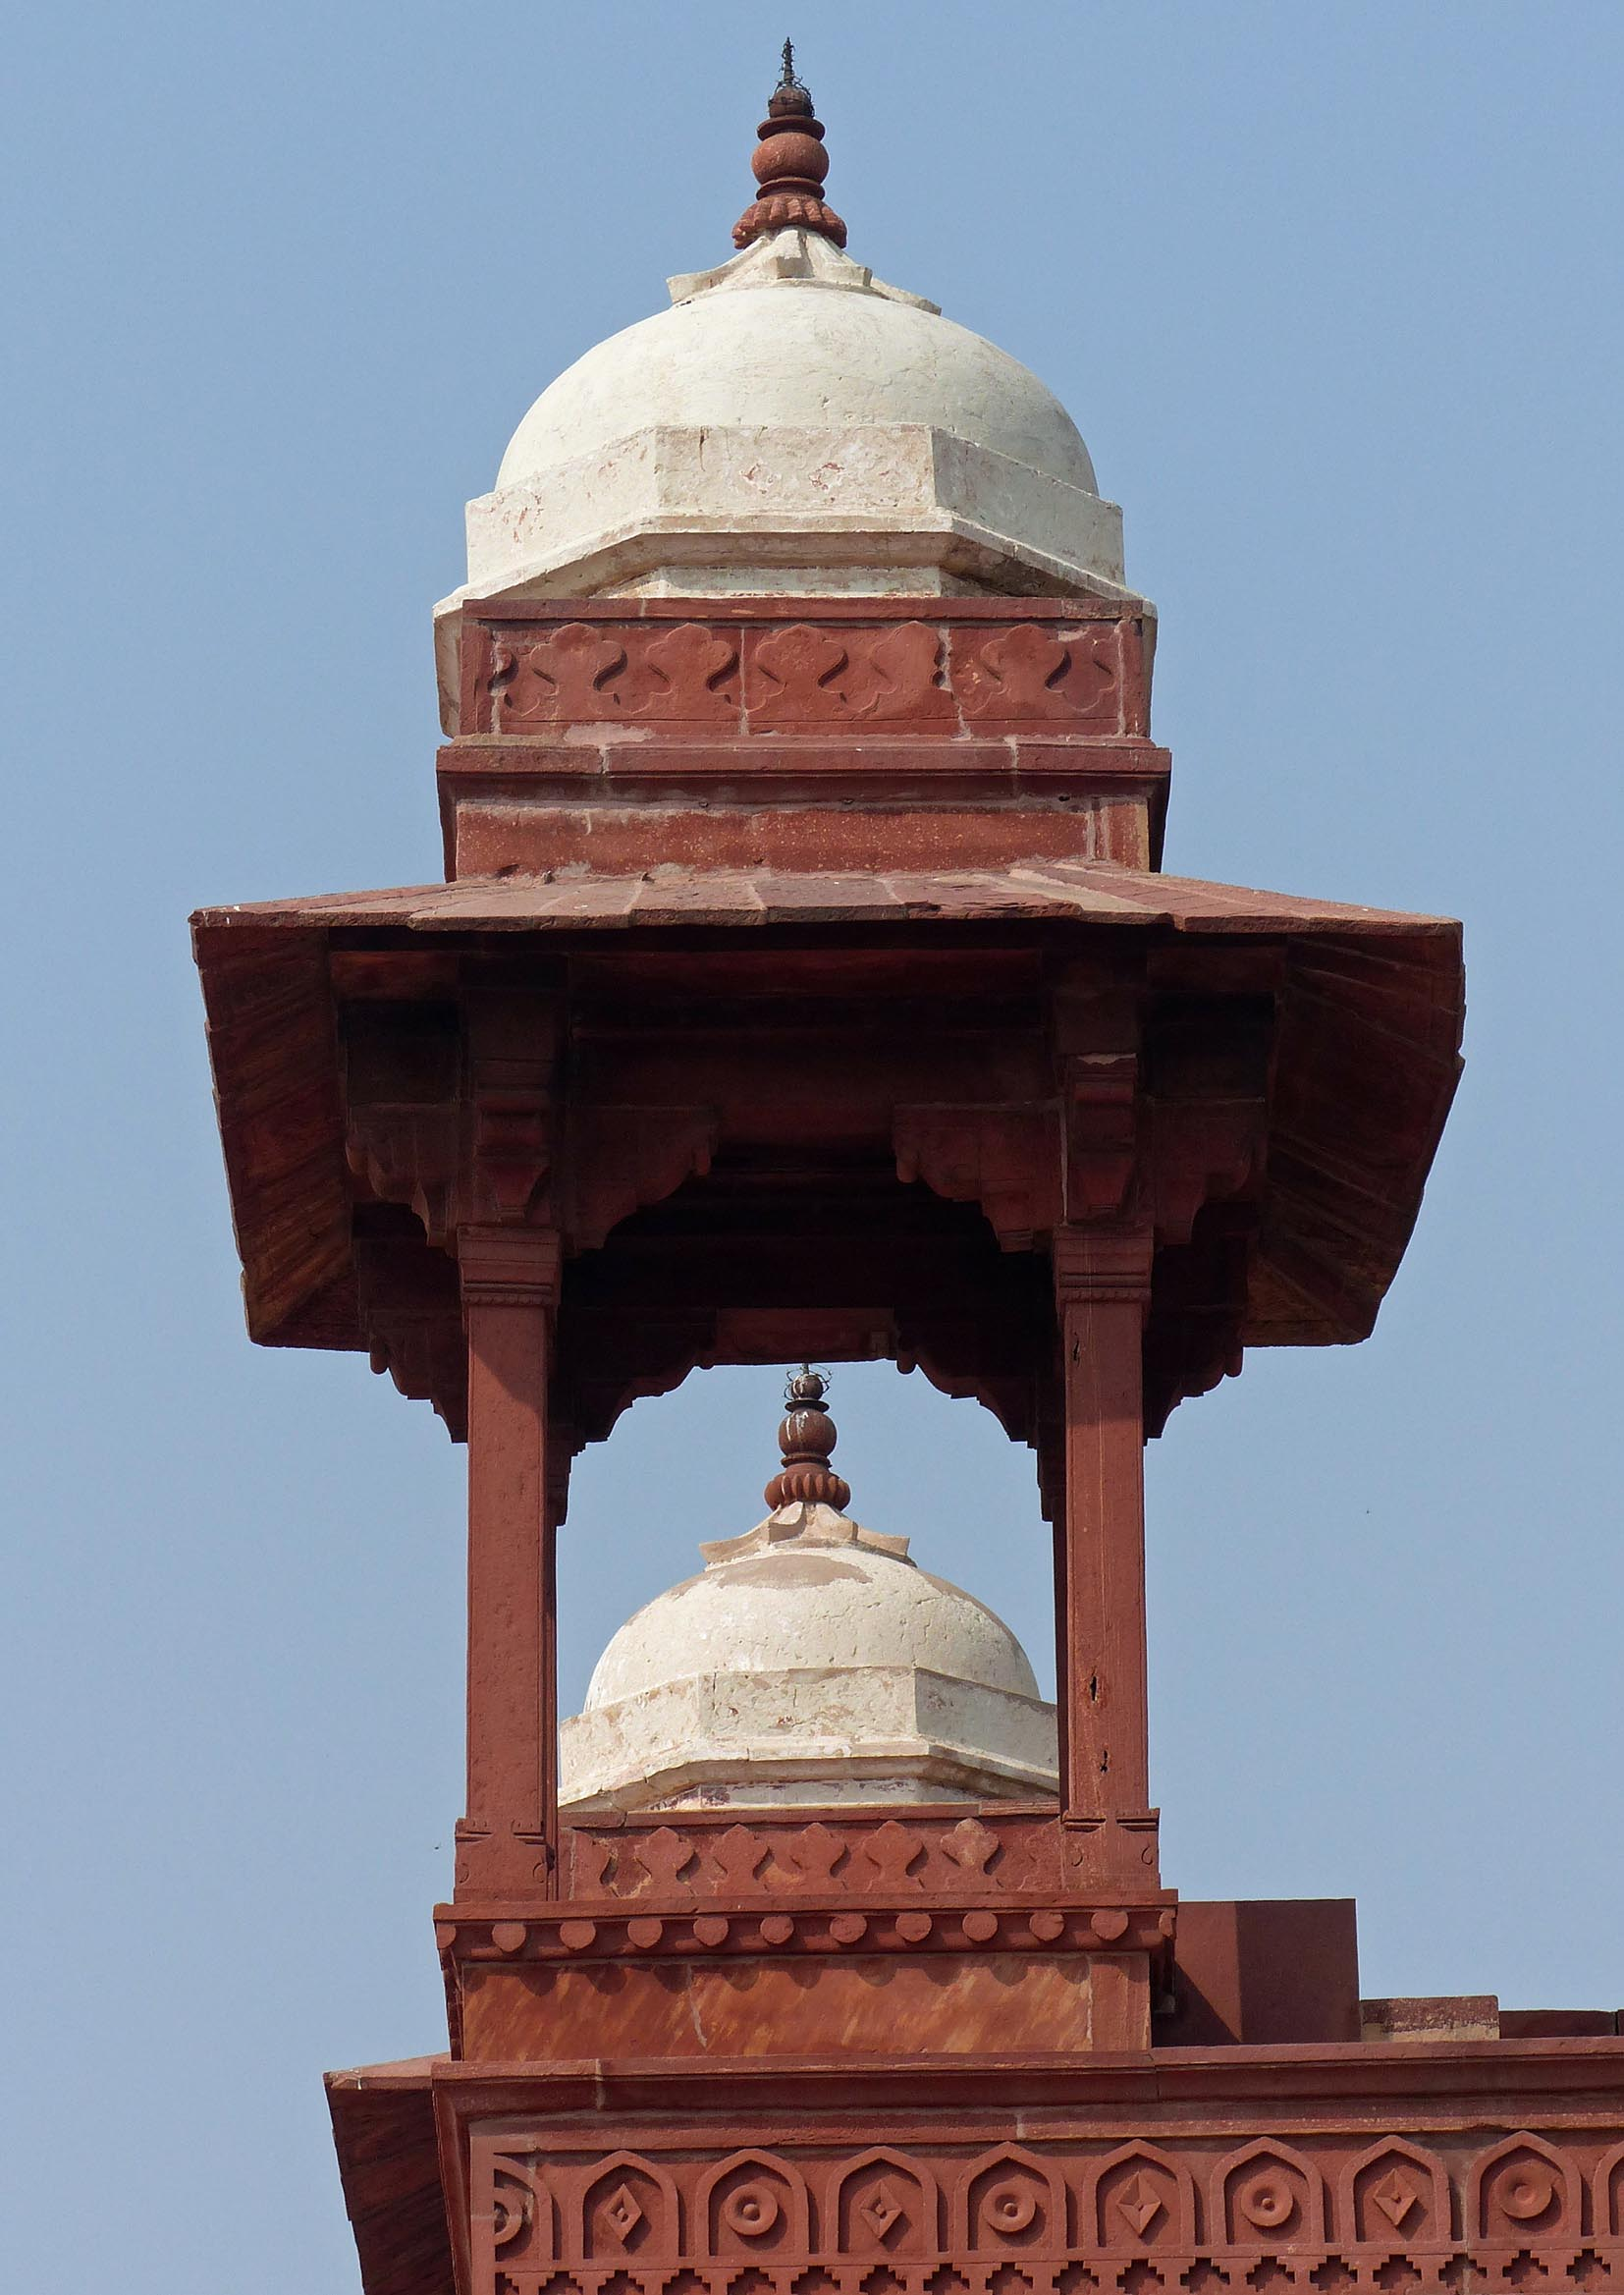 Red sandstone building with white roofed towers